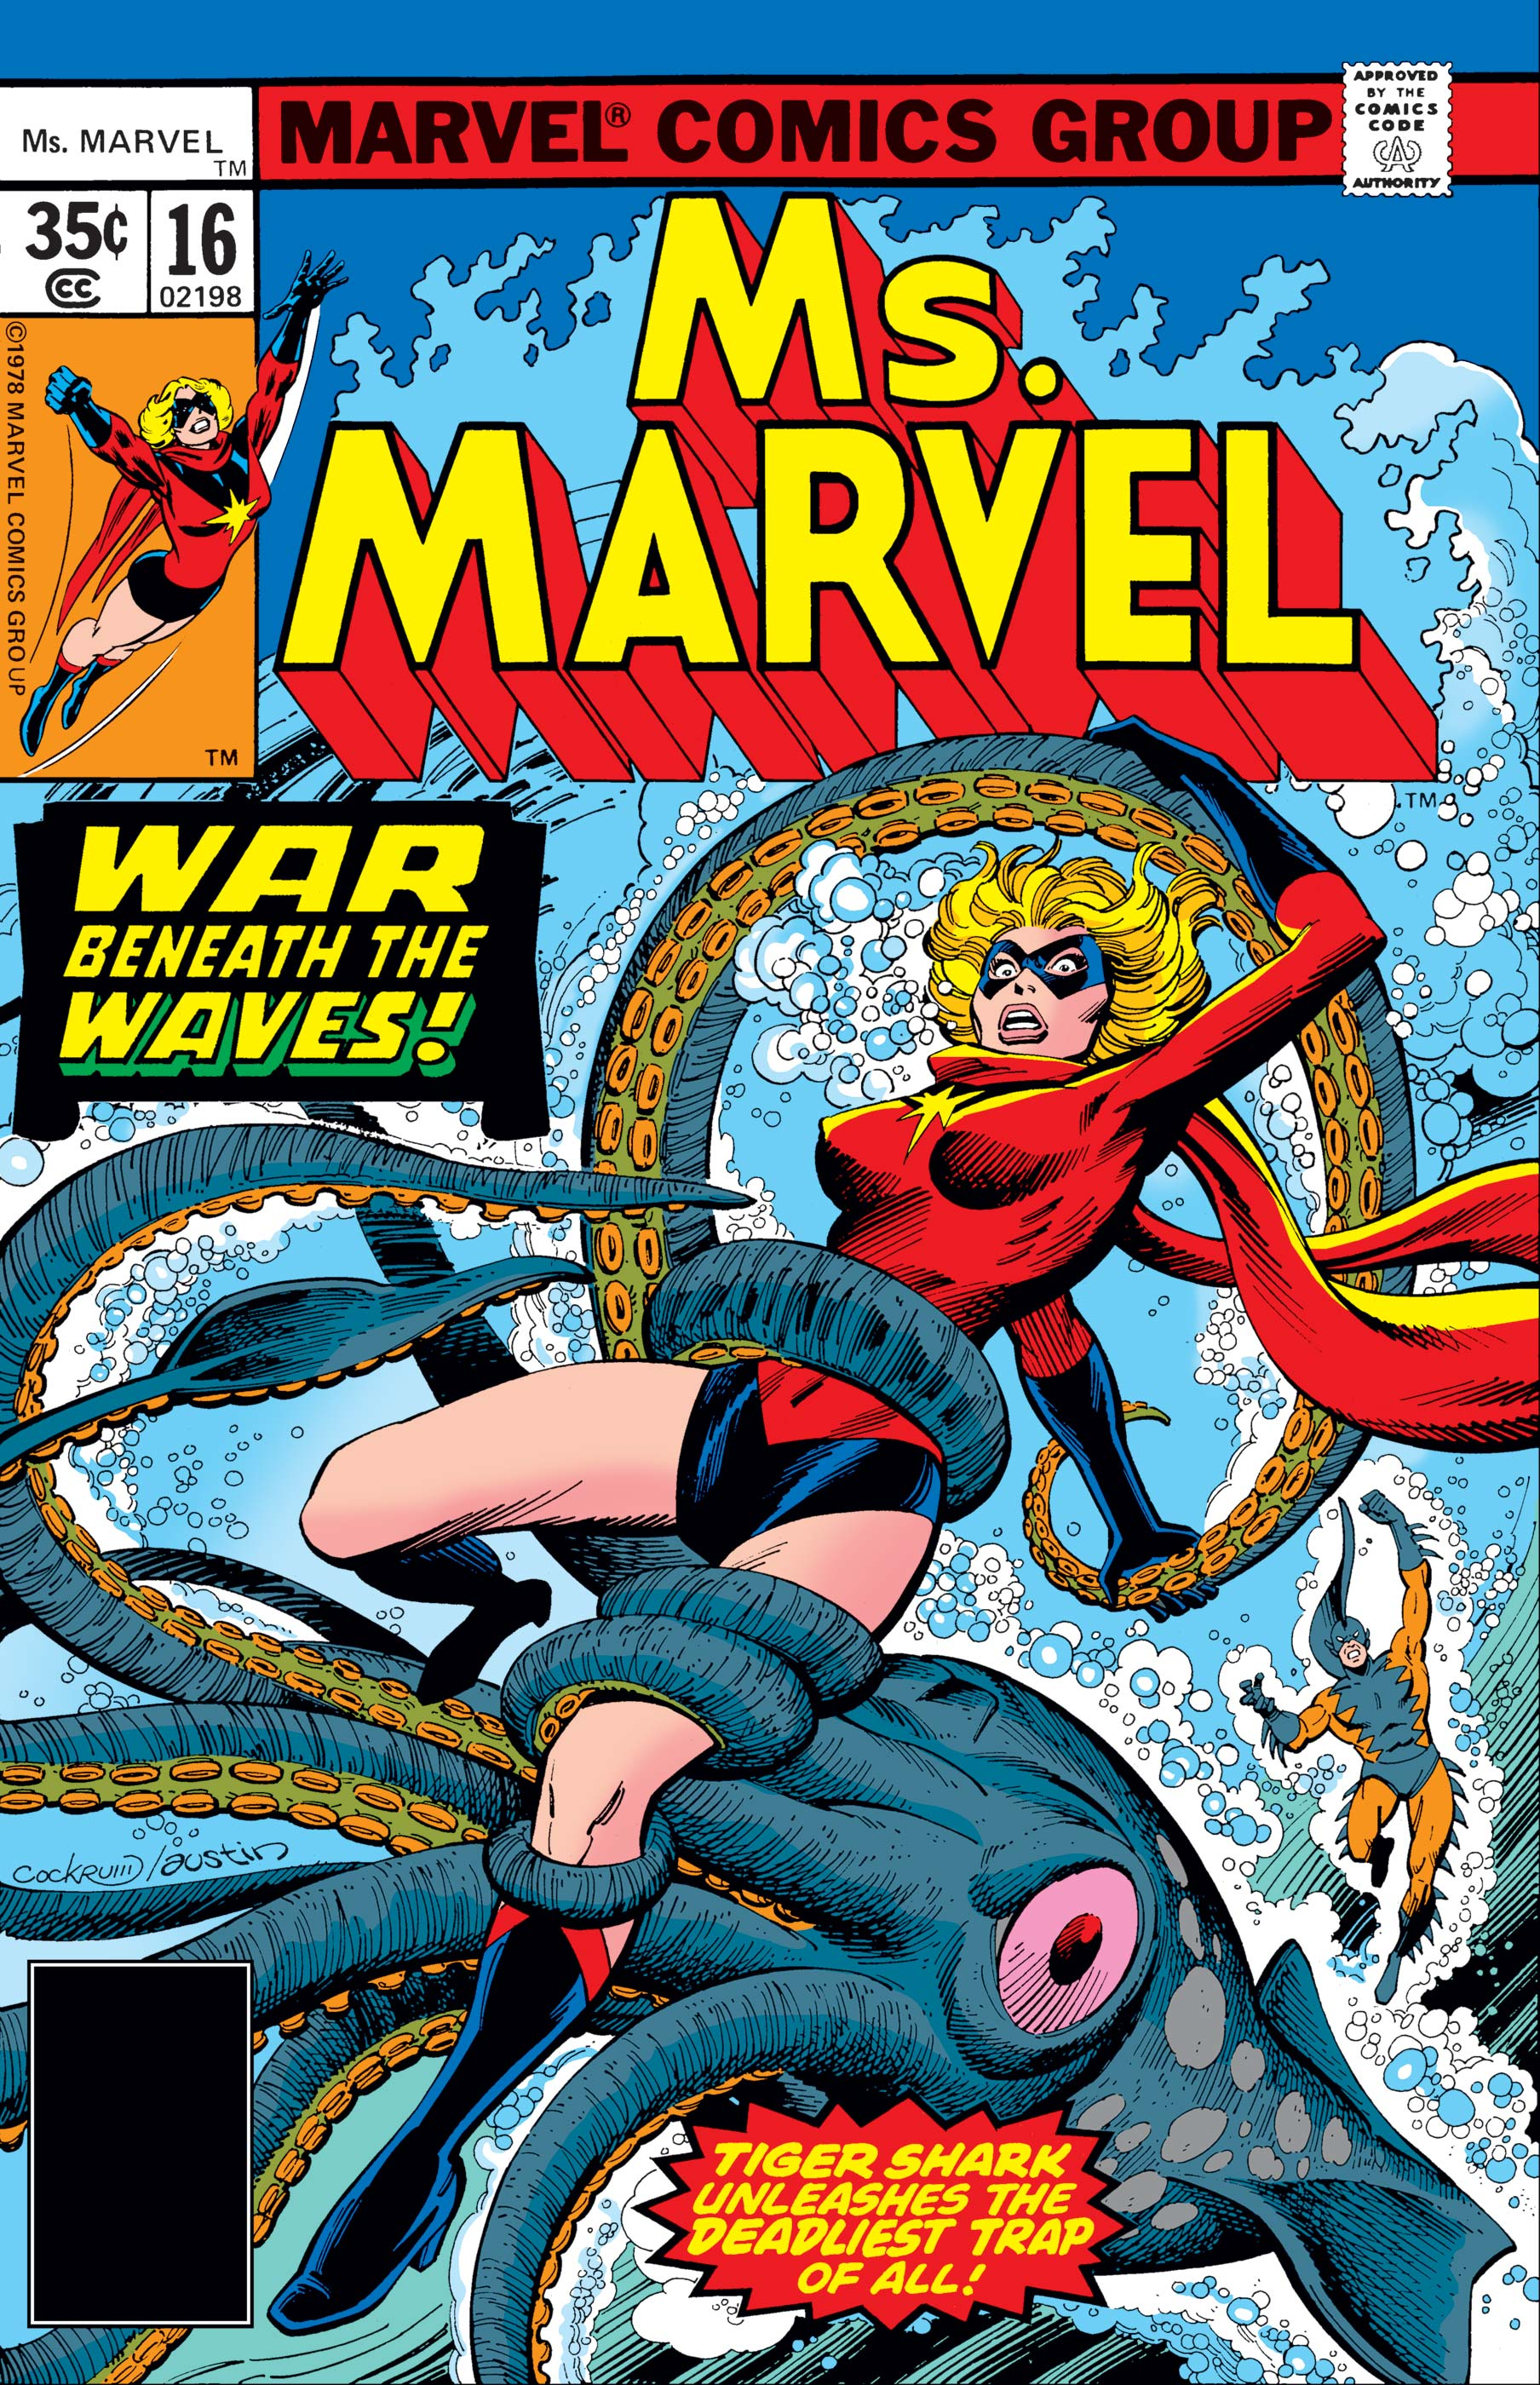 Ms. Marvel (1977) #16